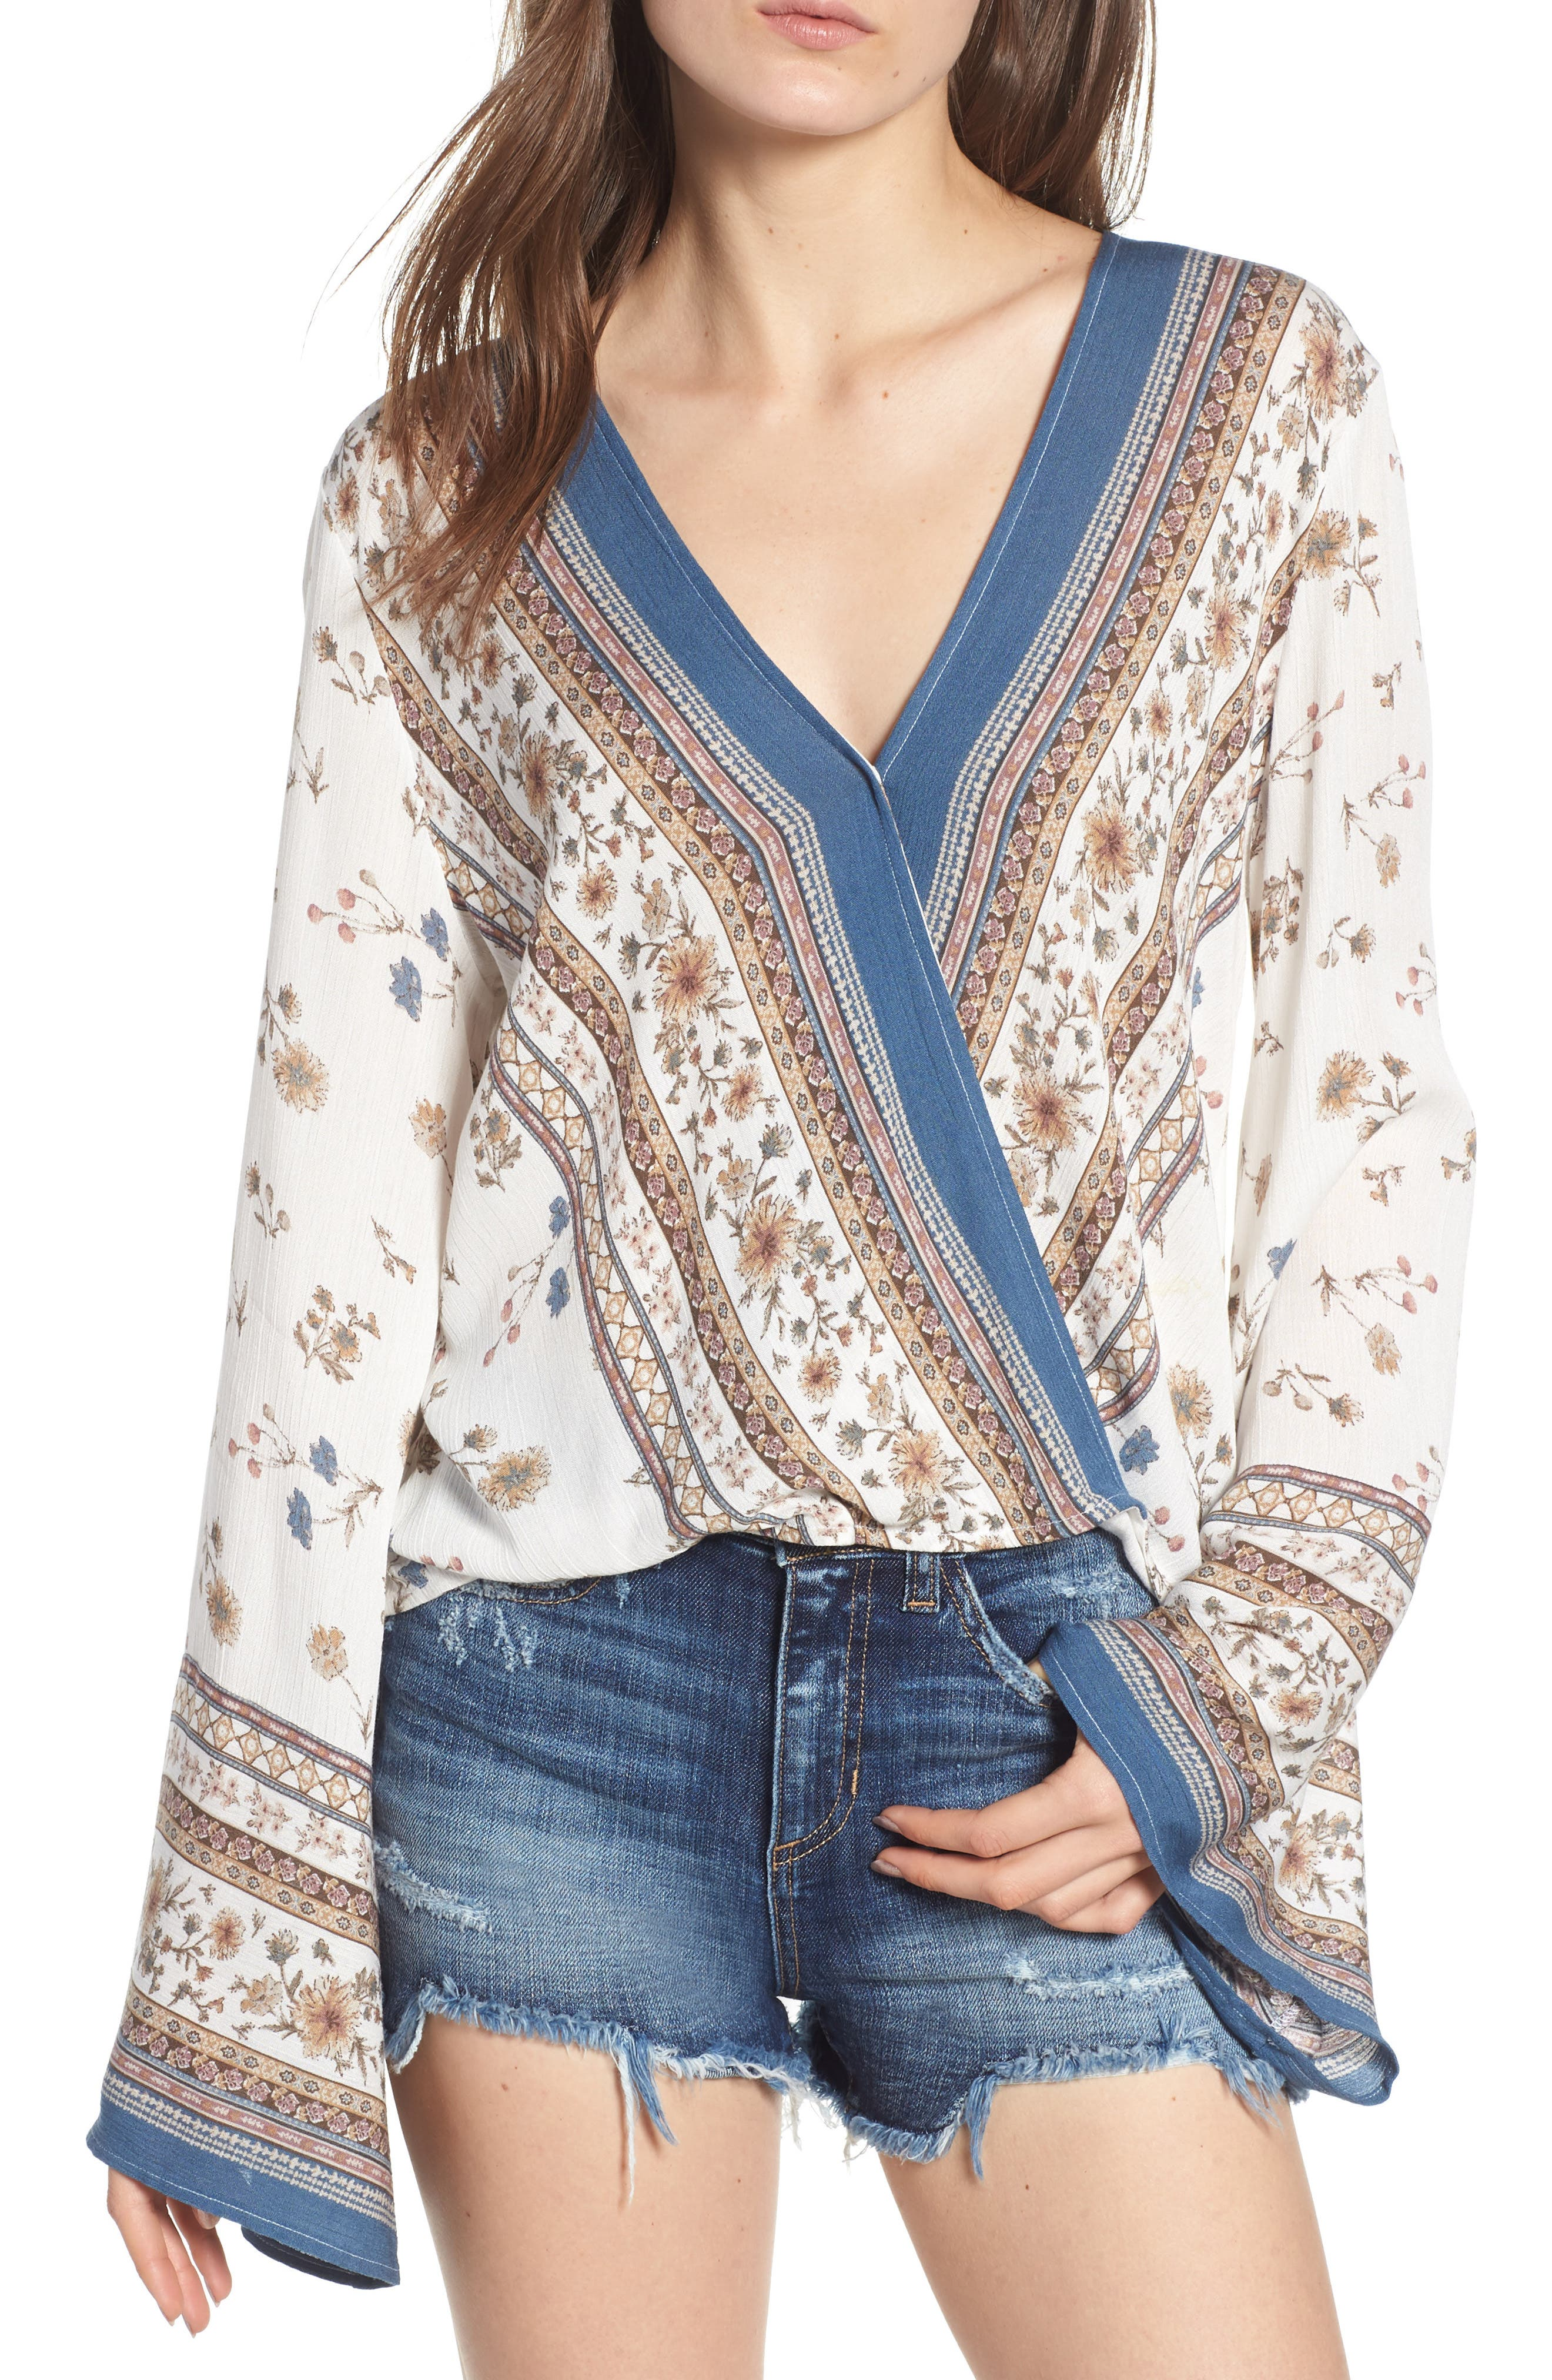 LOST AND WANDER LOST + WANDER TULUM PRINTED CROSSOVER TOP